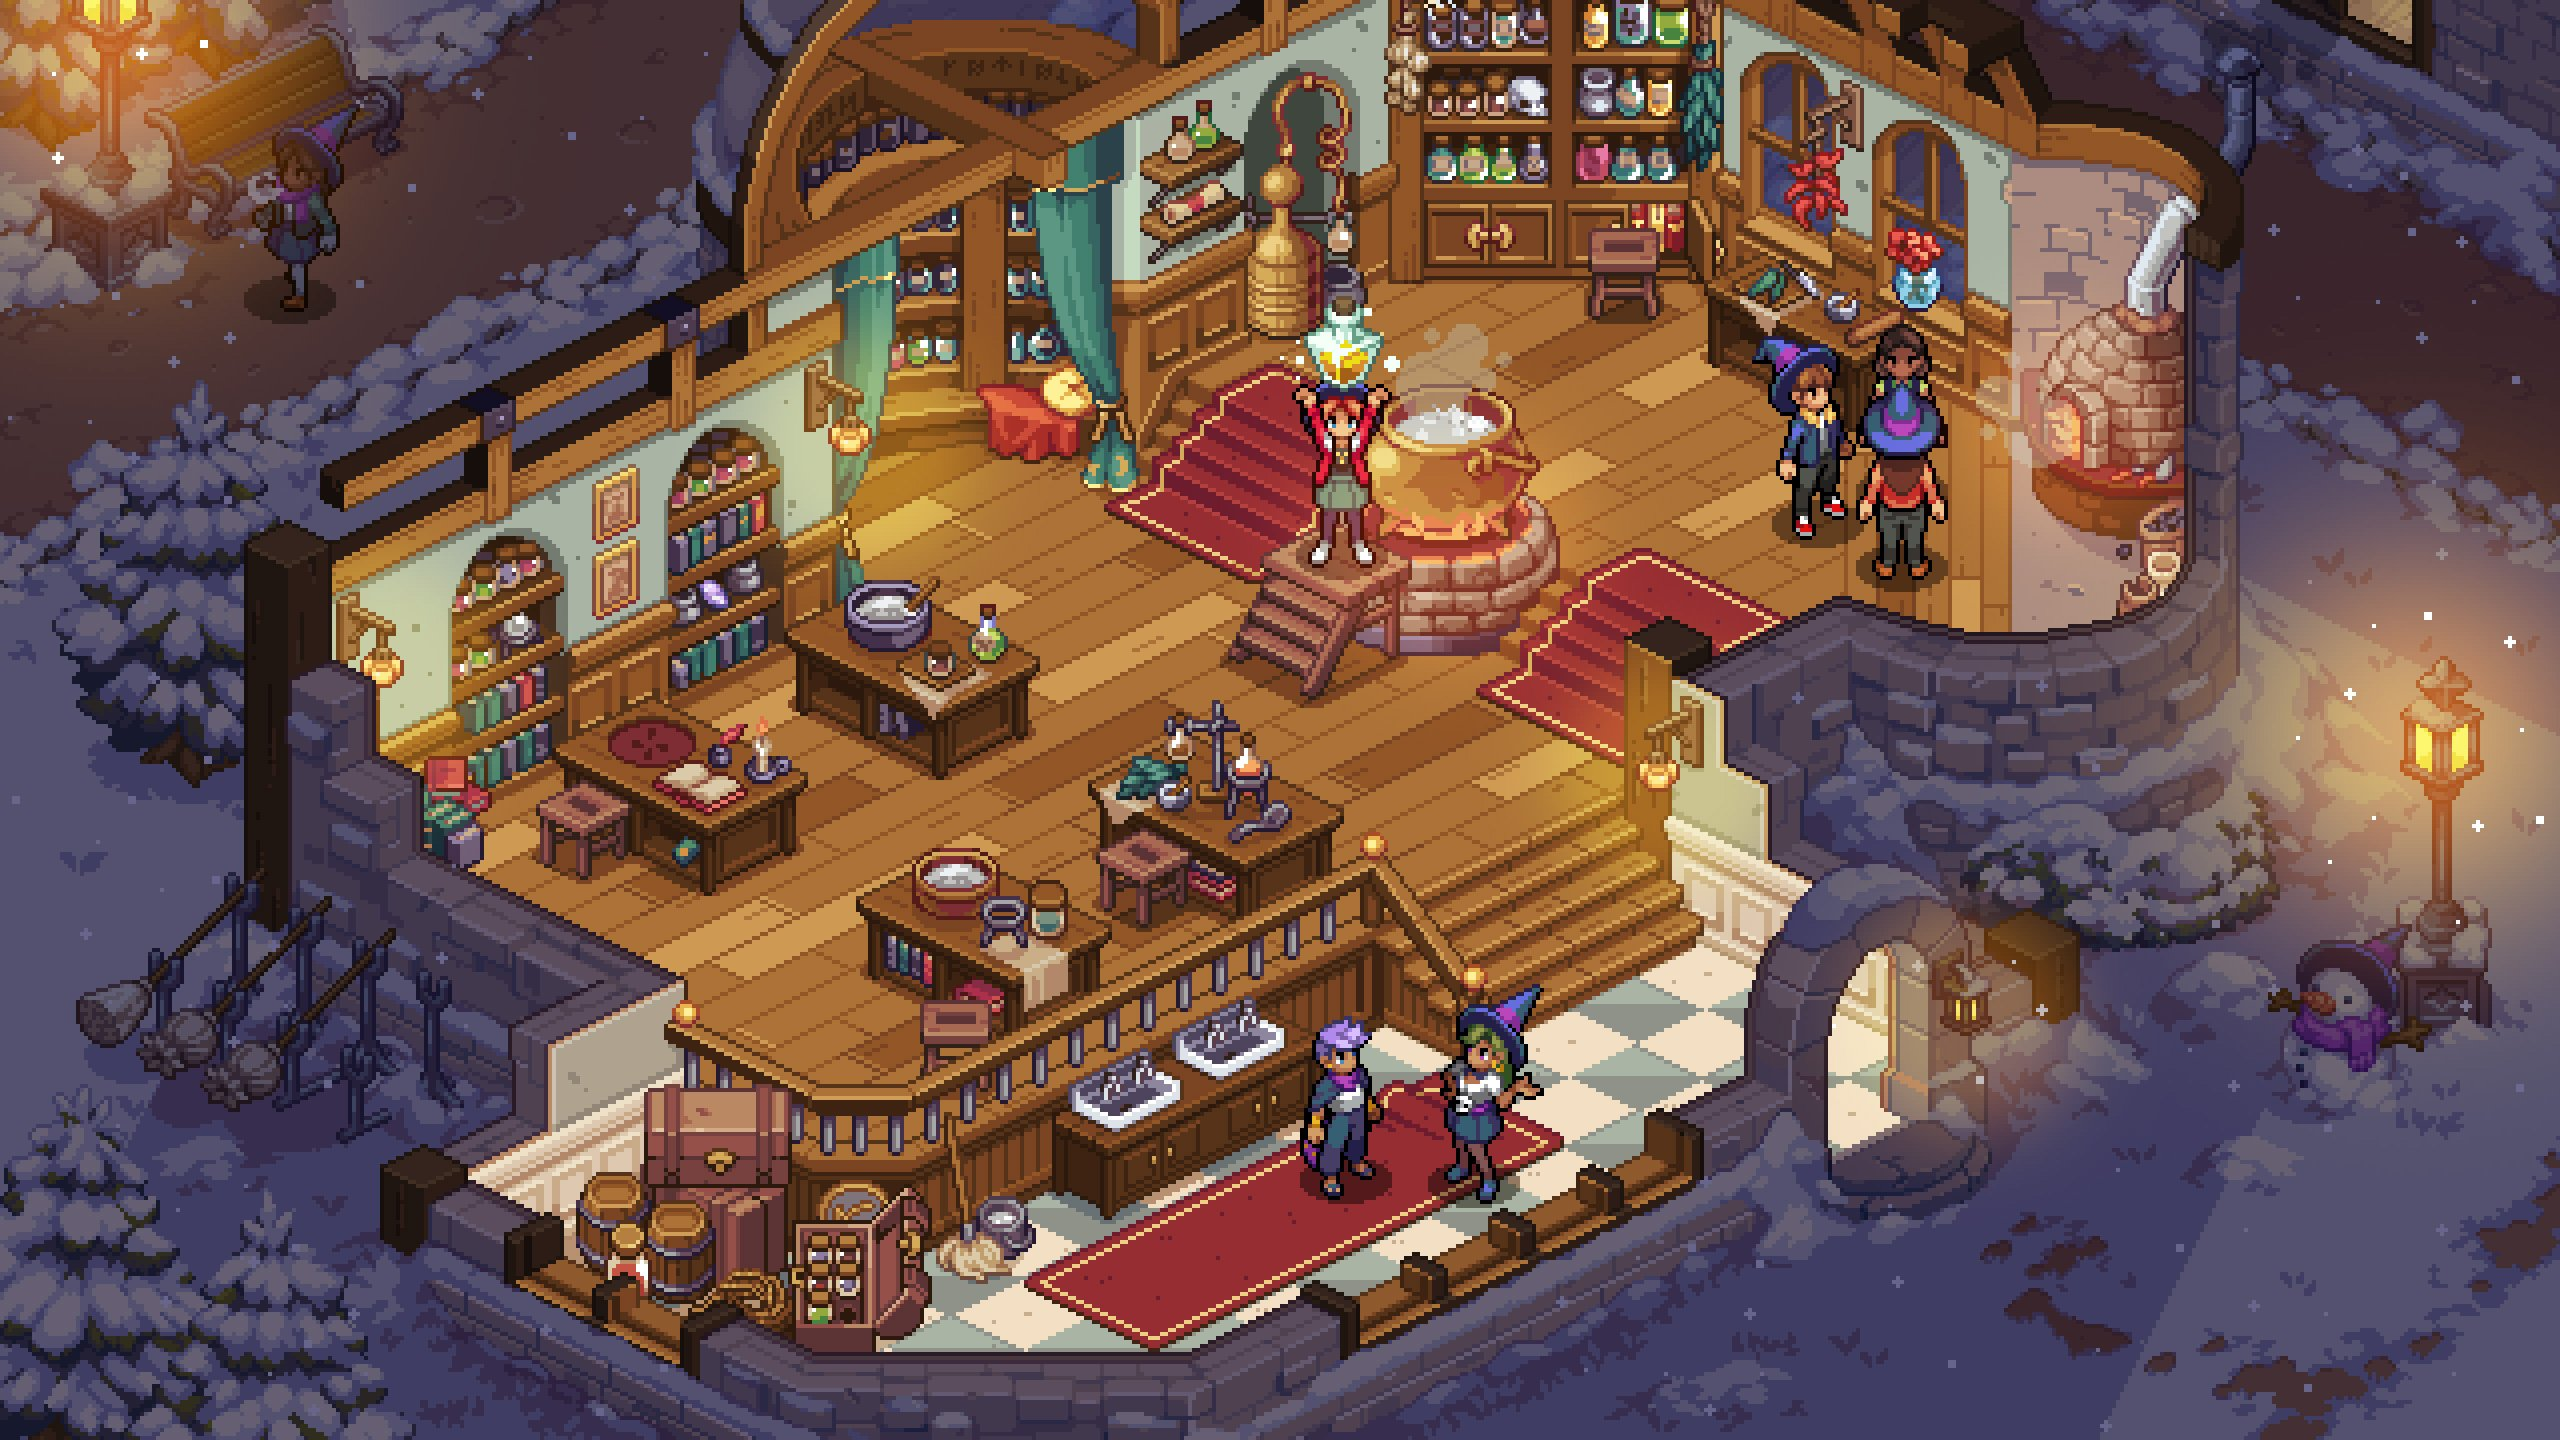 Chucklefish's magical school game Witchbrook has a new art style screenshot